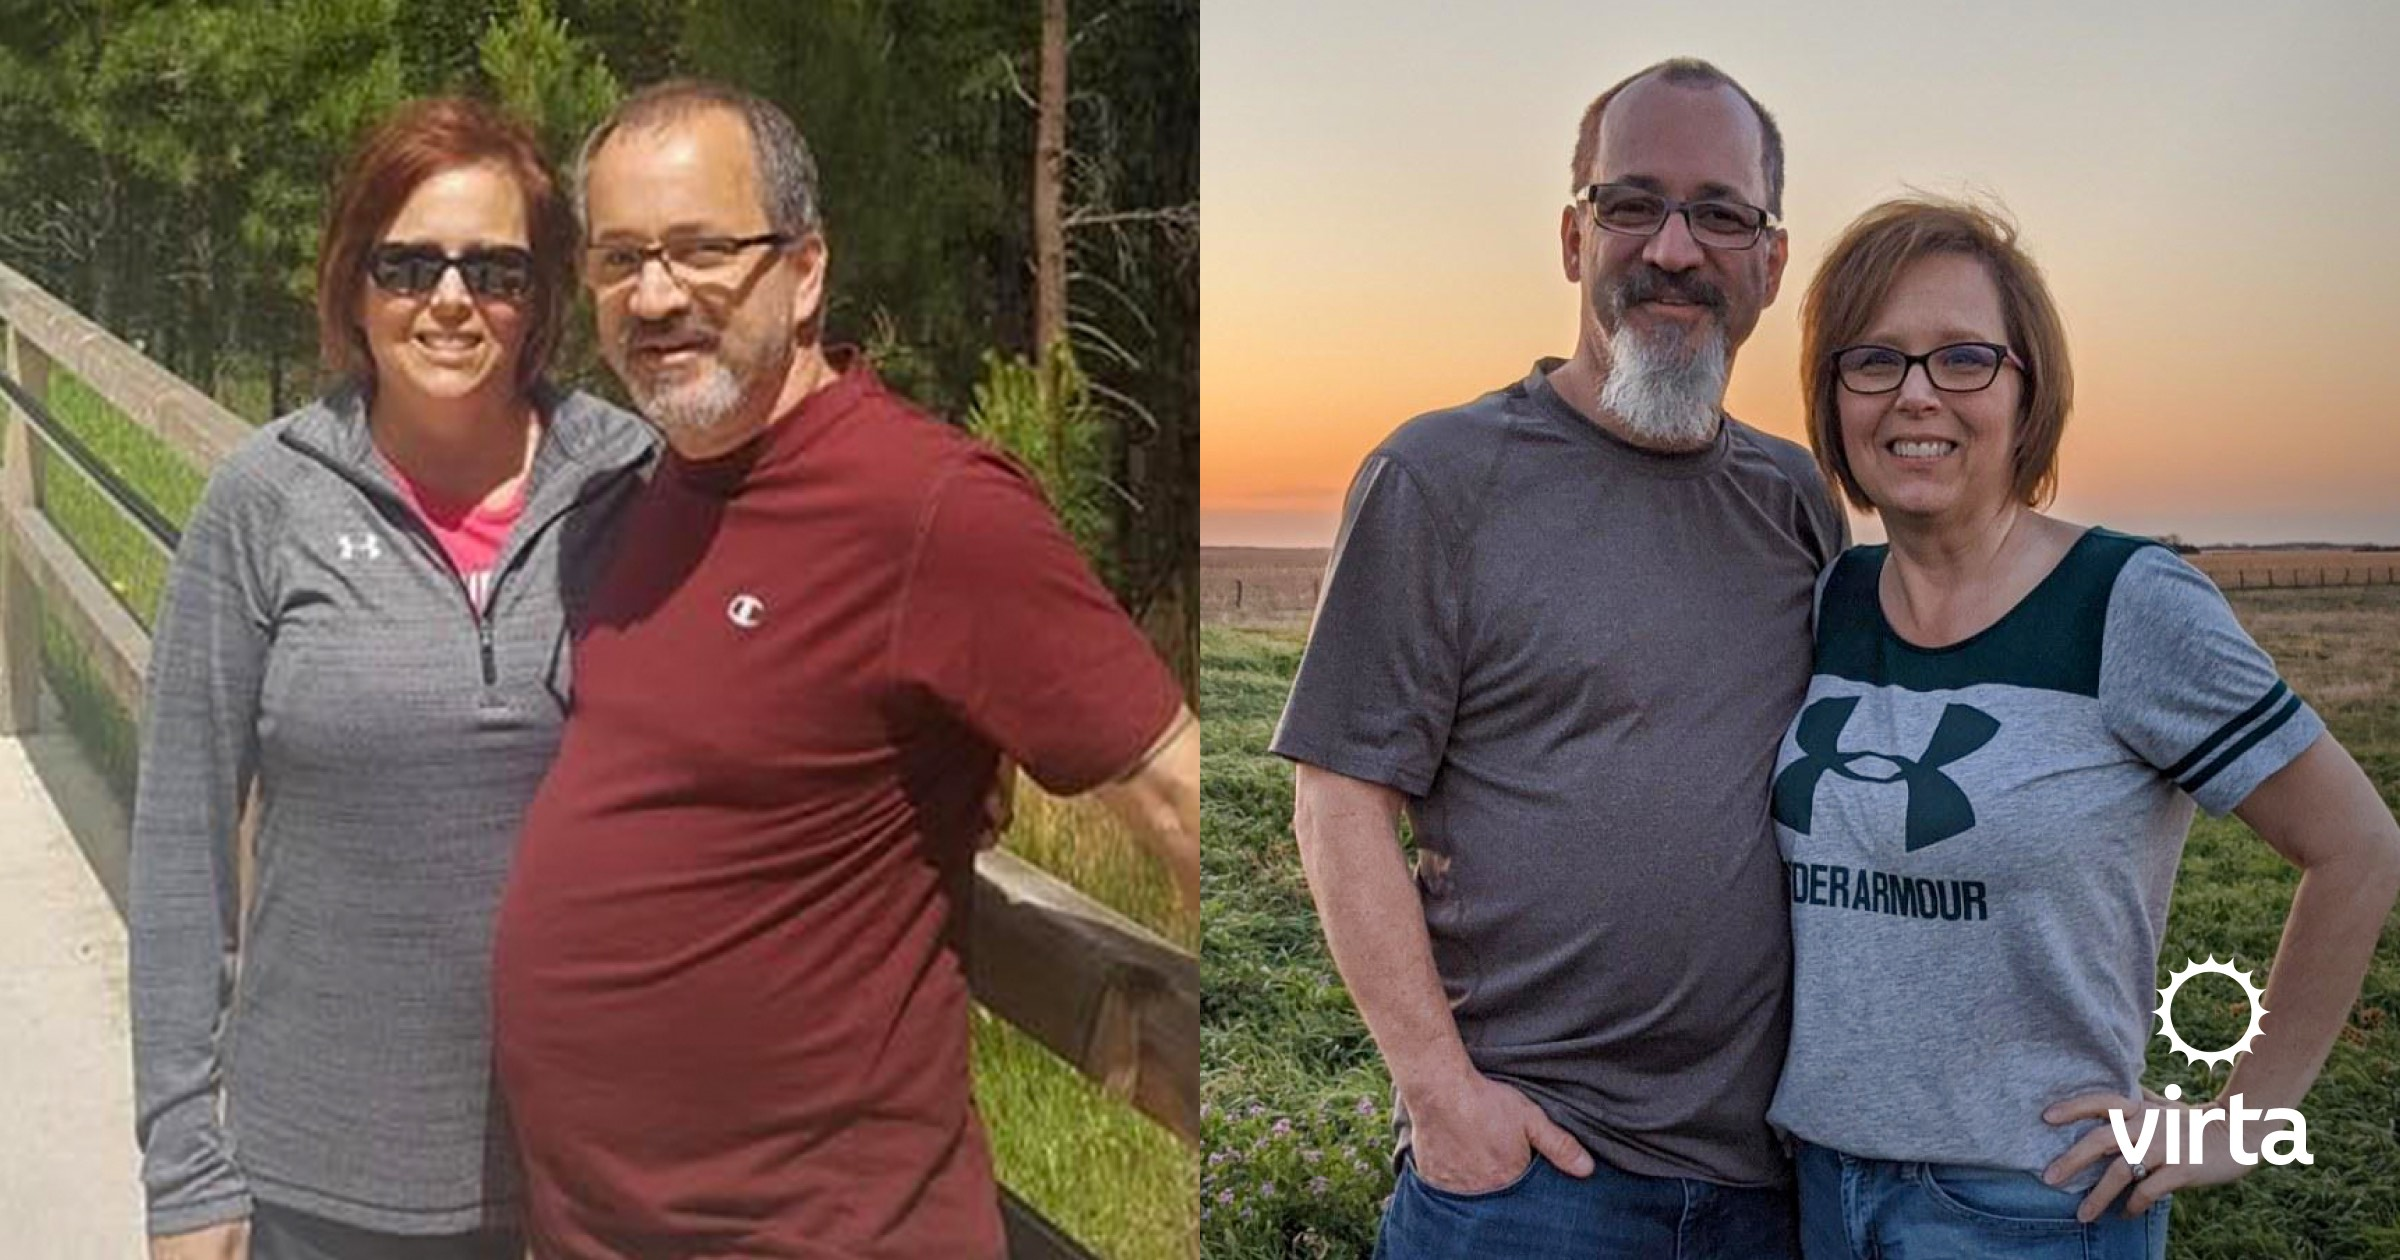 Reversing diabetes and losing weight together with Virta